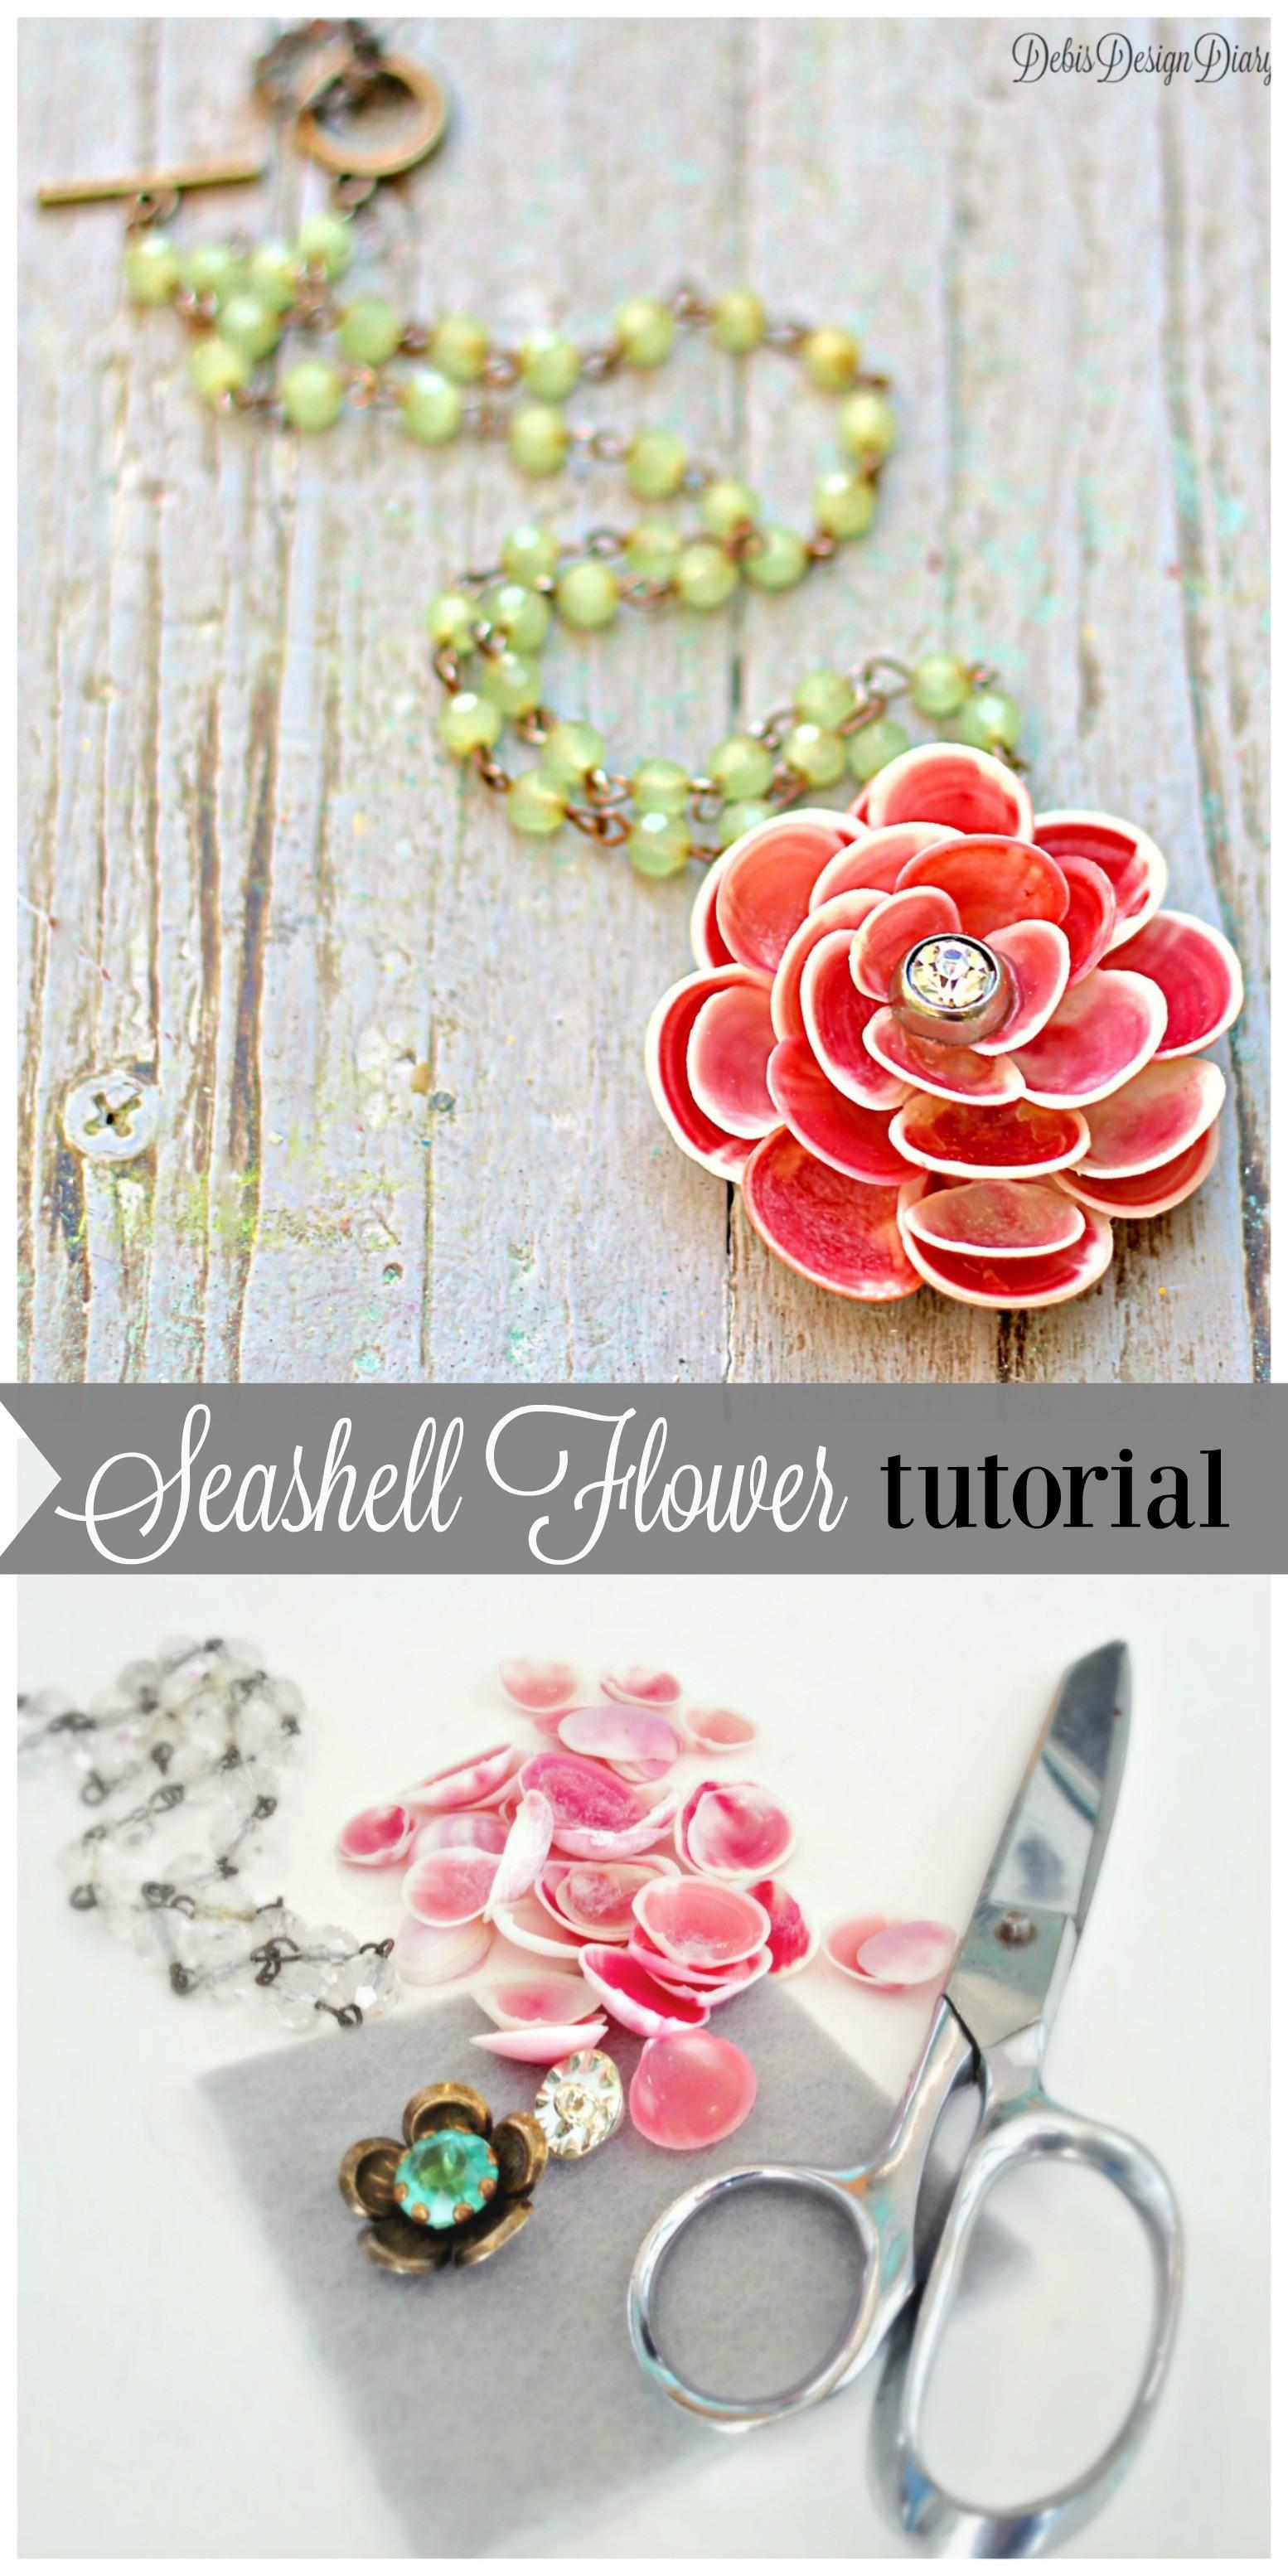 Fashionable Diy Beach Inspired Jewelry Makes Breezy